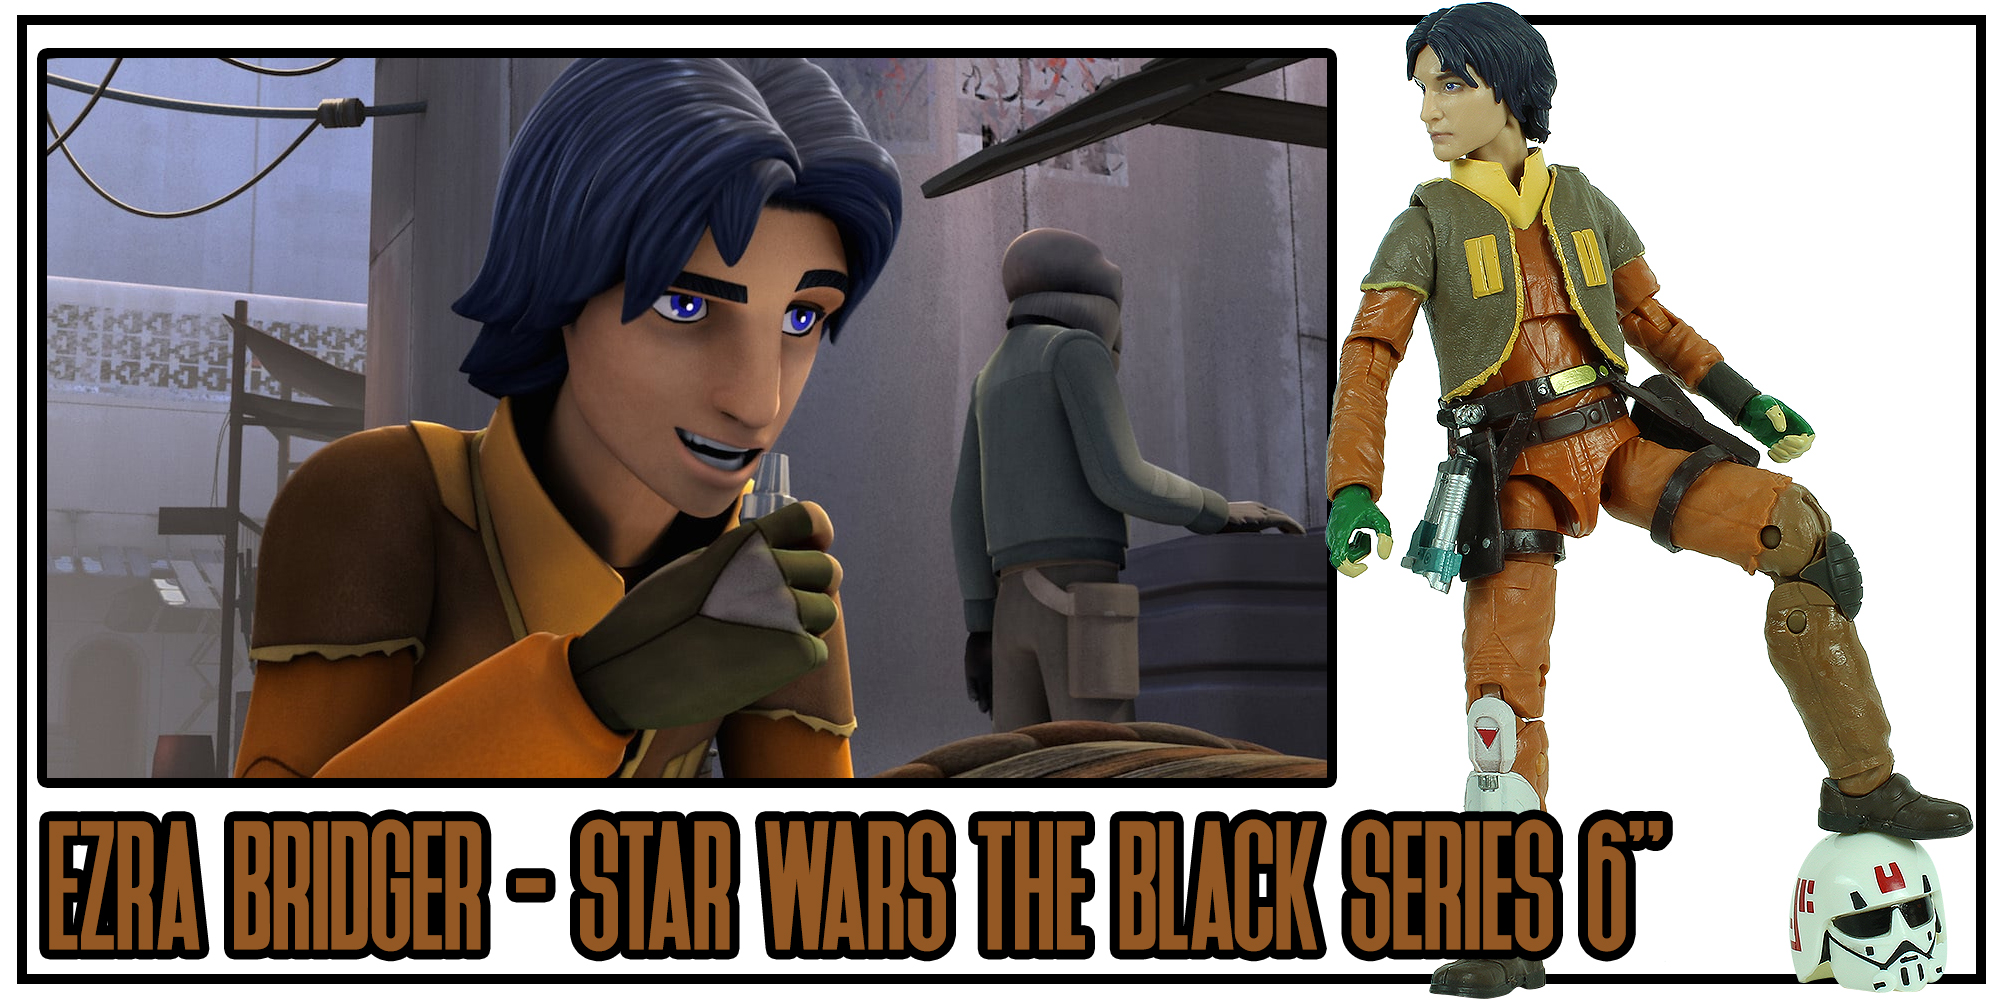 Black Series Ezra Bridger